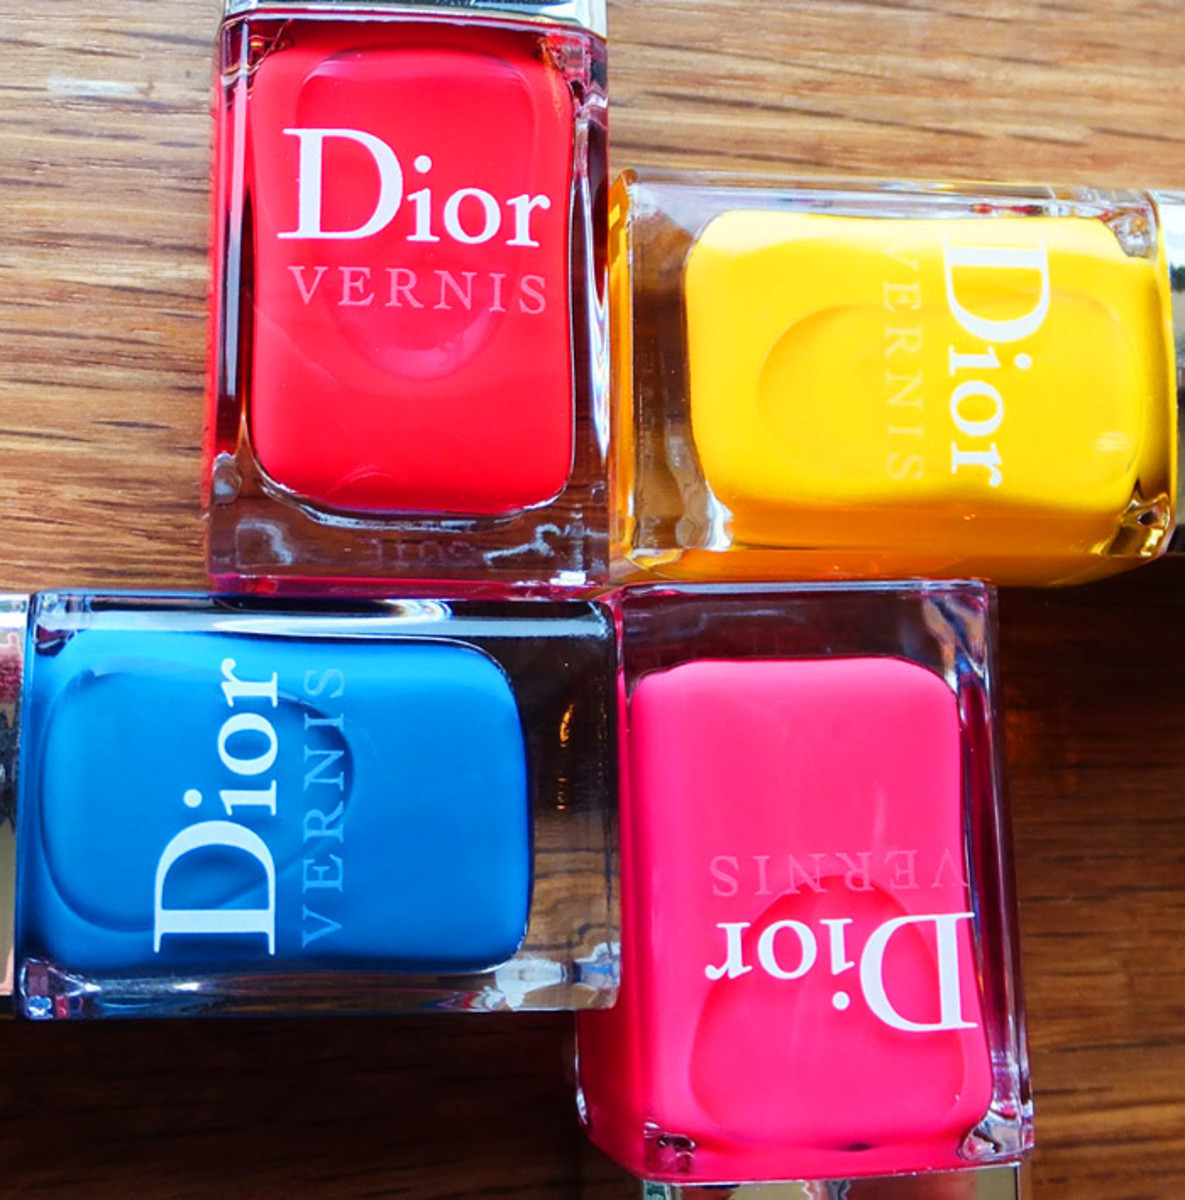 Dior Summer Mix nail polish in Calypso 158_Acapulco 118_Rose Bikini 664_Lagoon 198